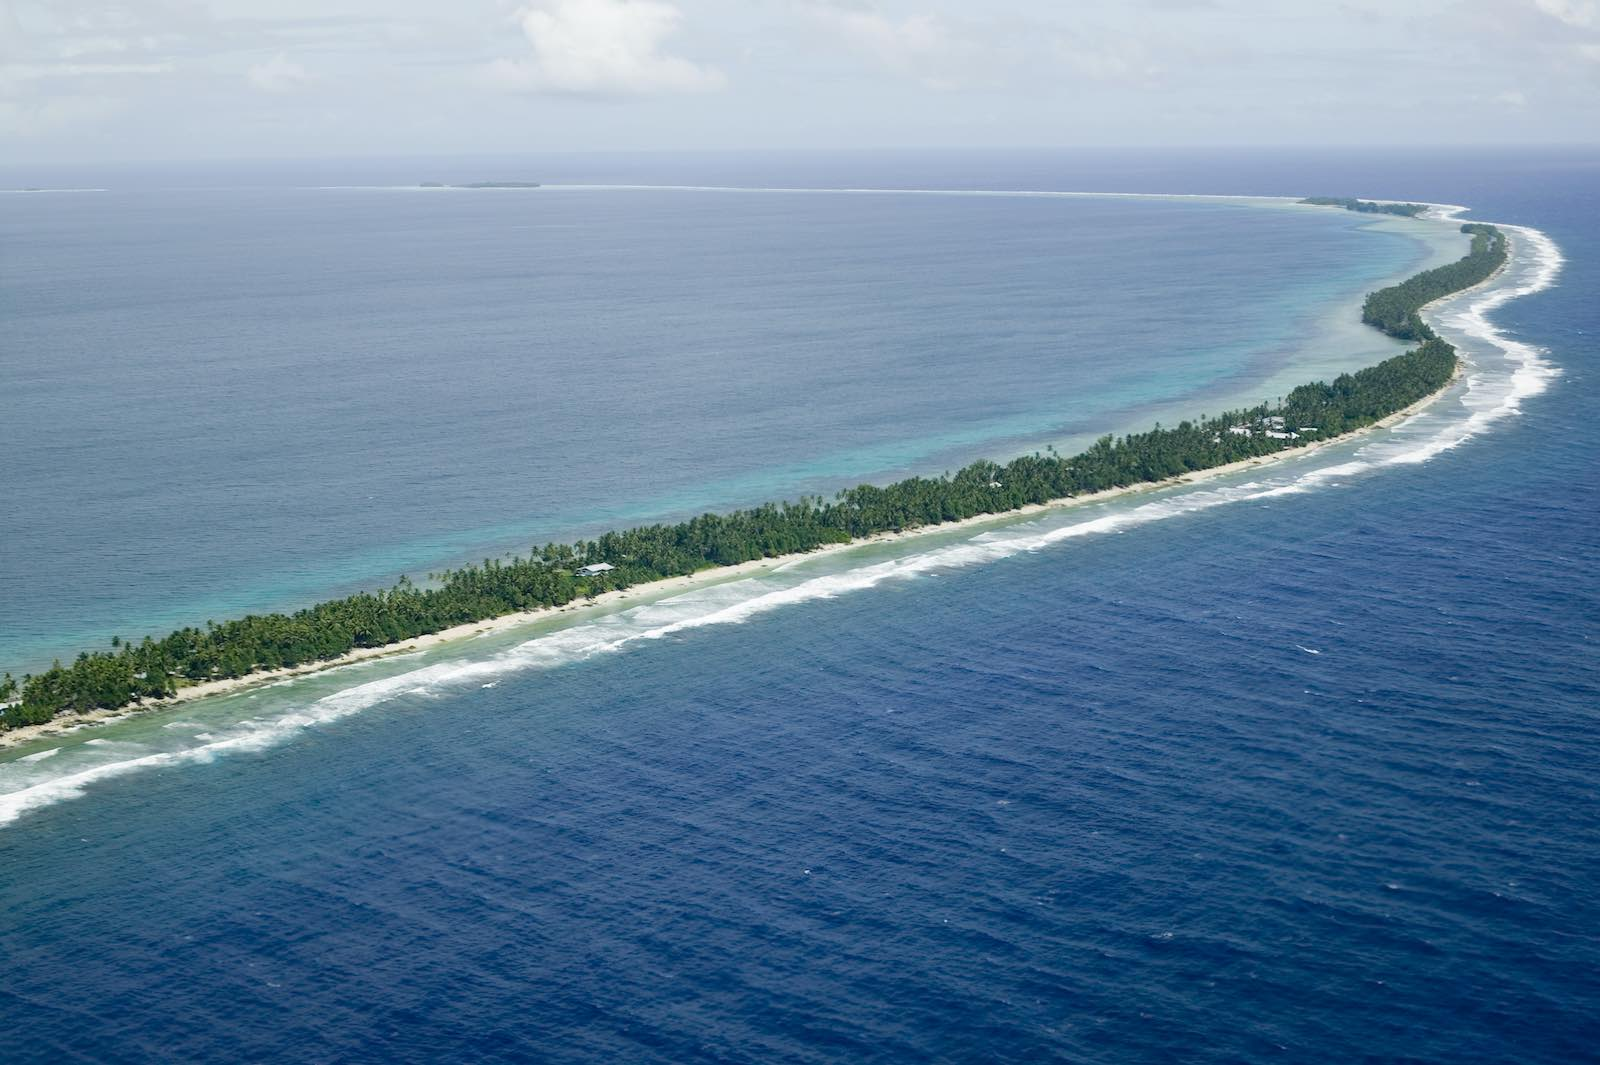 Funafuti Island in Tuvalu, which hosted the Pacific Islands Forum meeting in 2019 (Ashley Cooper/Getty Images)